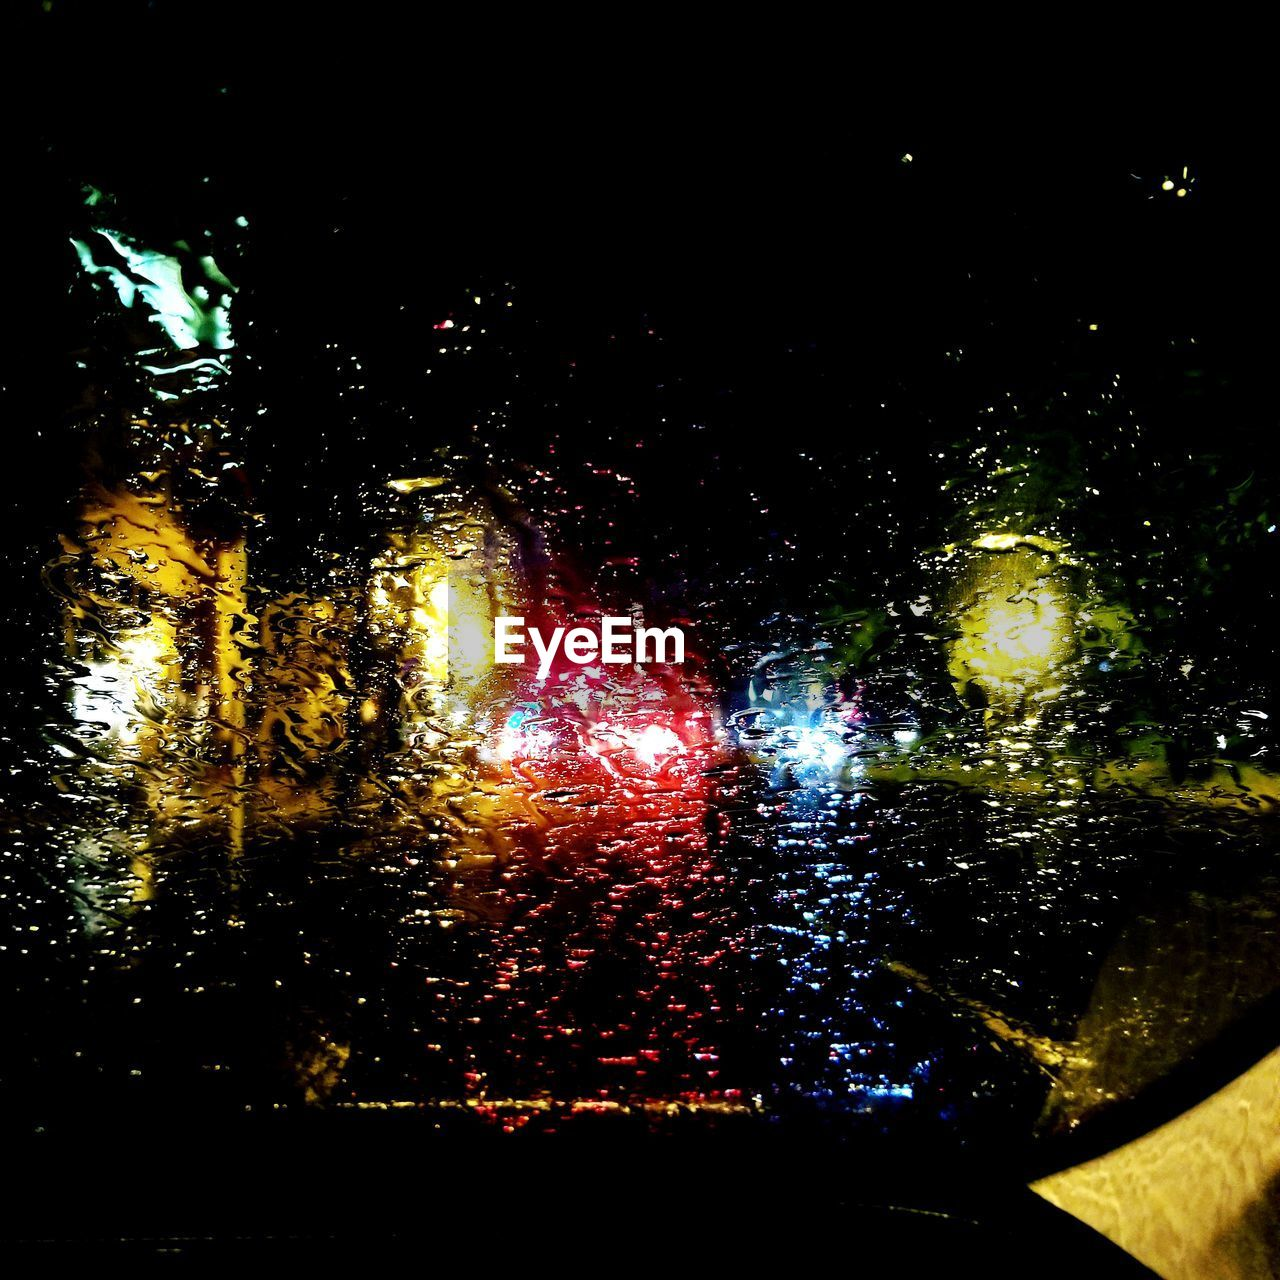 night, illuminated, wet, no people, water, rain, drop, transparent, glass - material, transportation, vehicle interior, multi colored, car, mode of transportation, nature, rainy season, window, windshield, glowing, outdoors, raindrop, light, glass